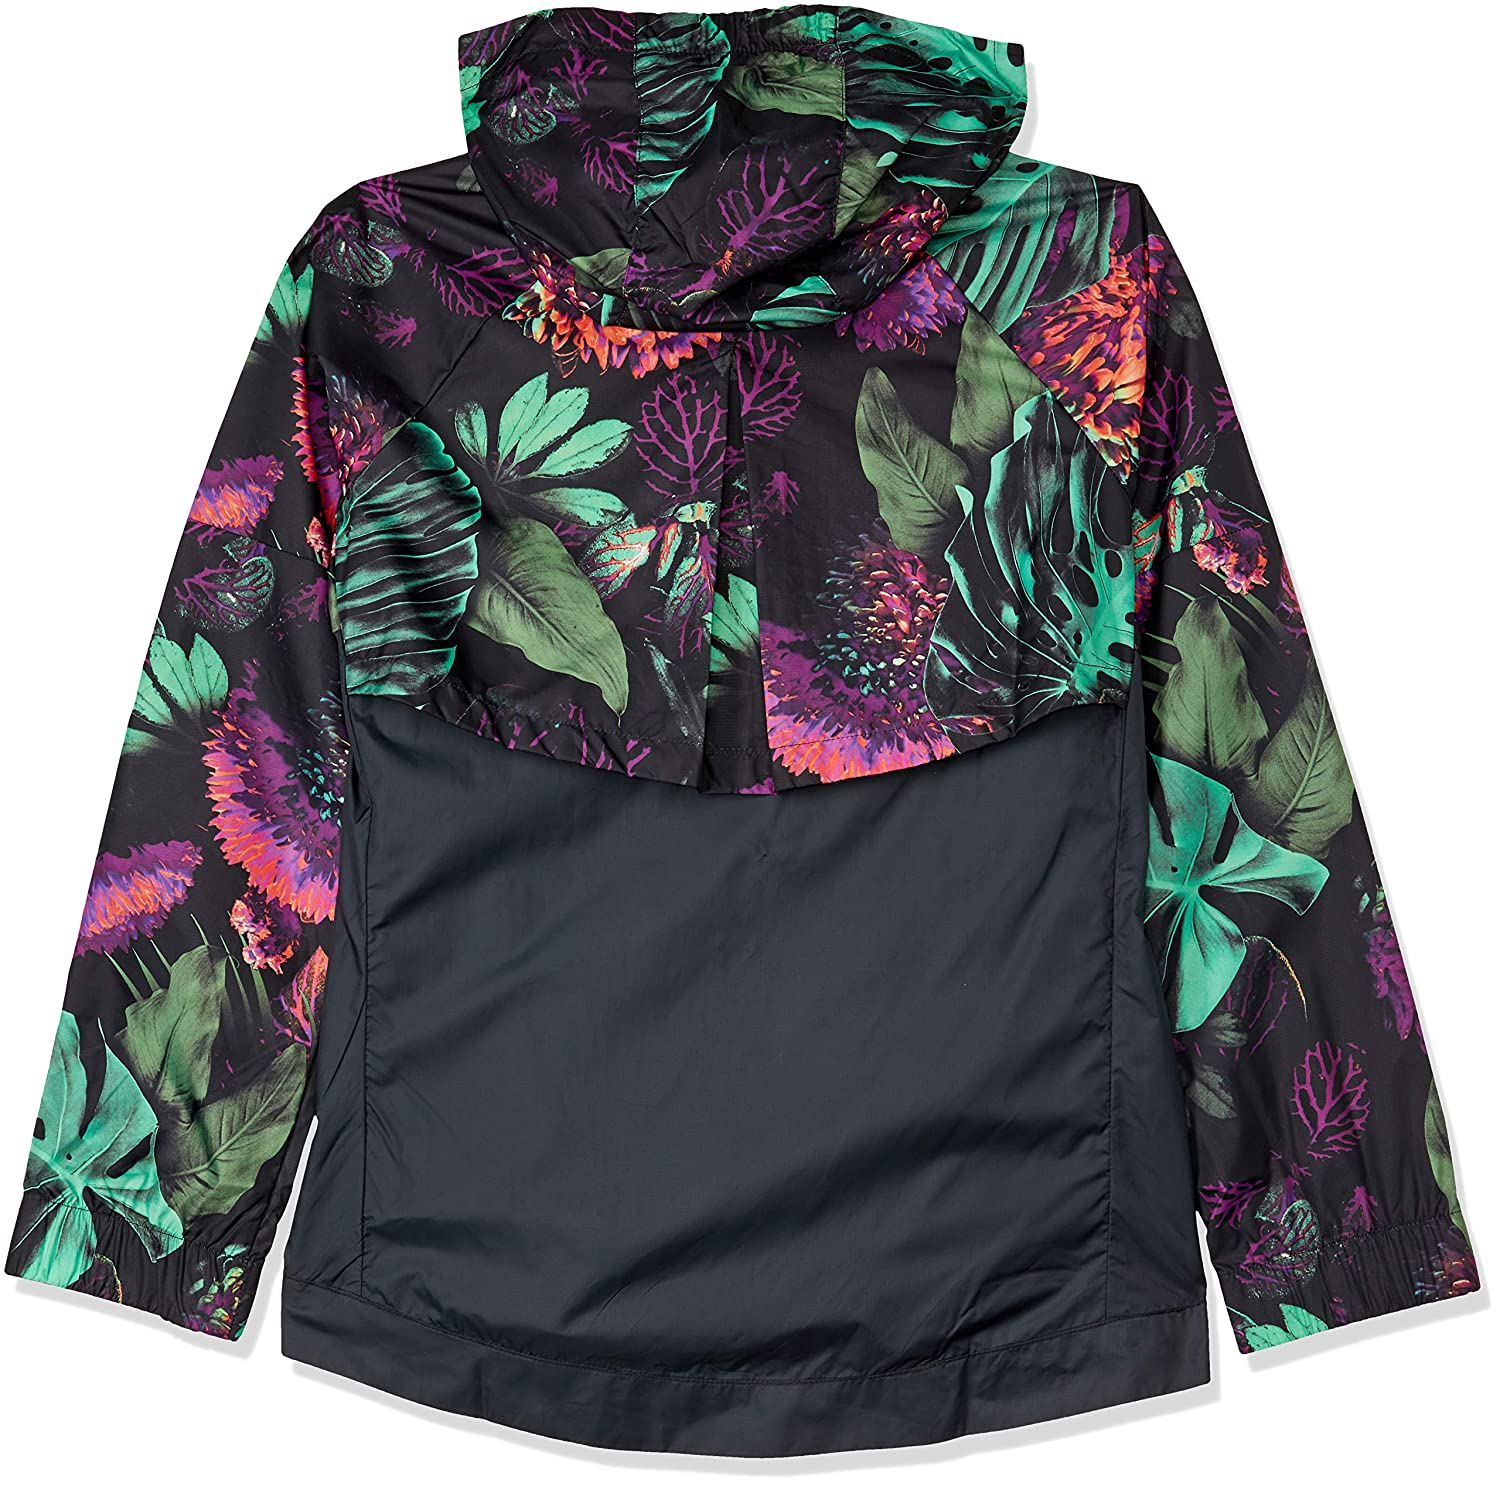 dc3946d6978 Amazon.com : Nike Girls Sportswear Printed Windrunner Jacket : Clothing